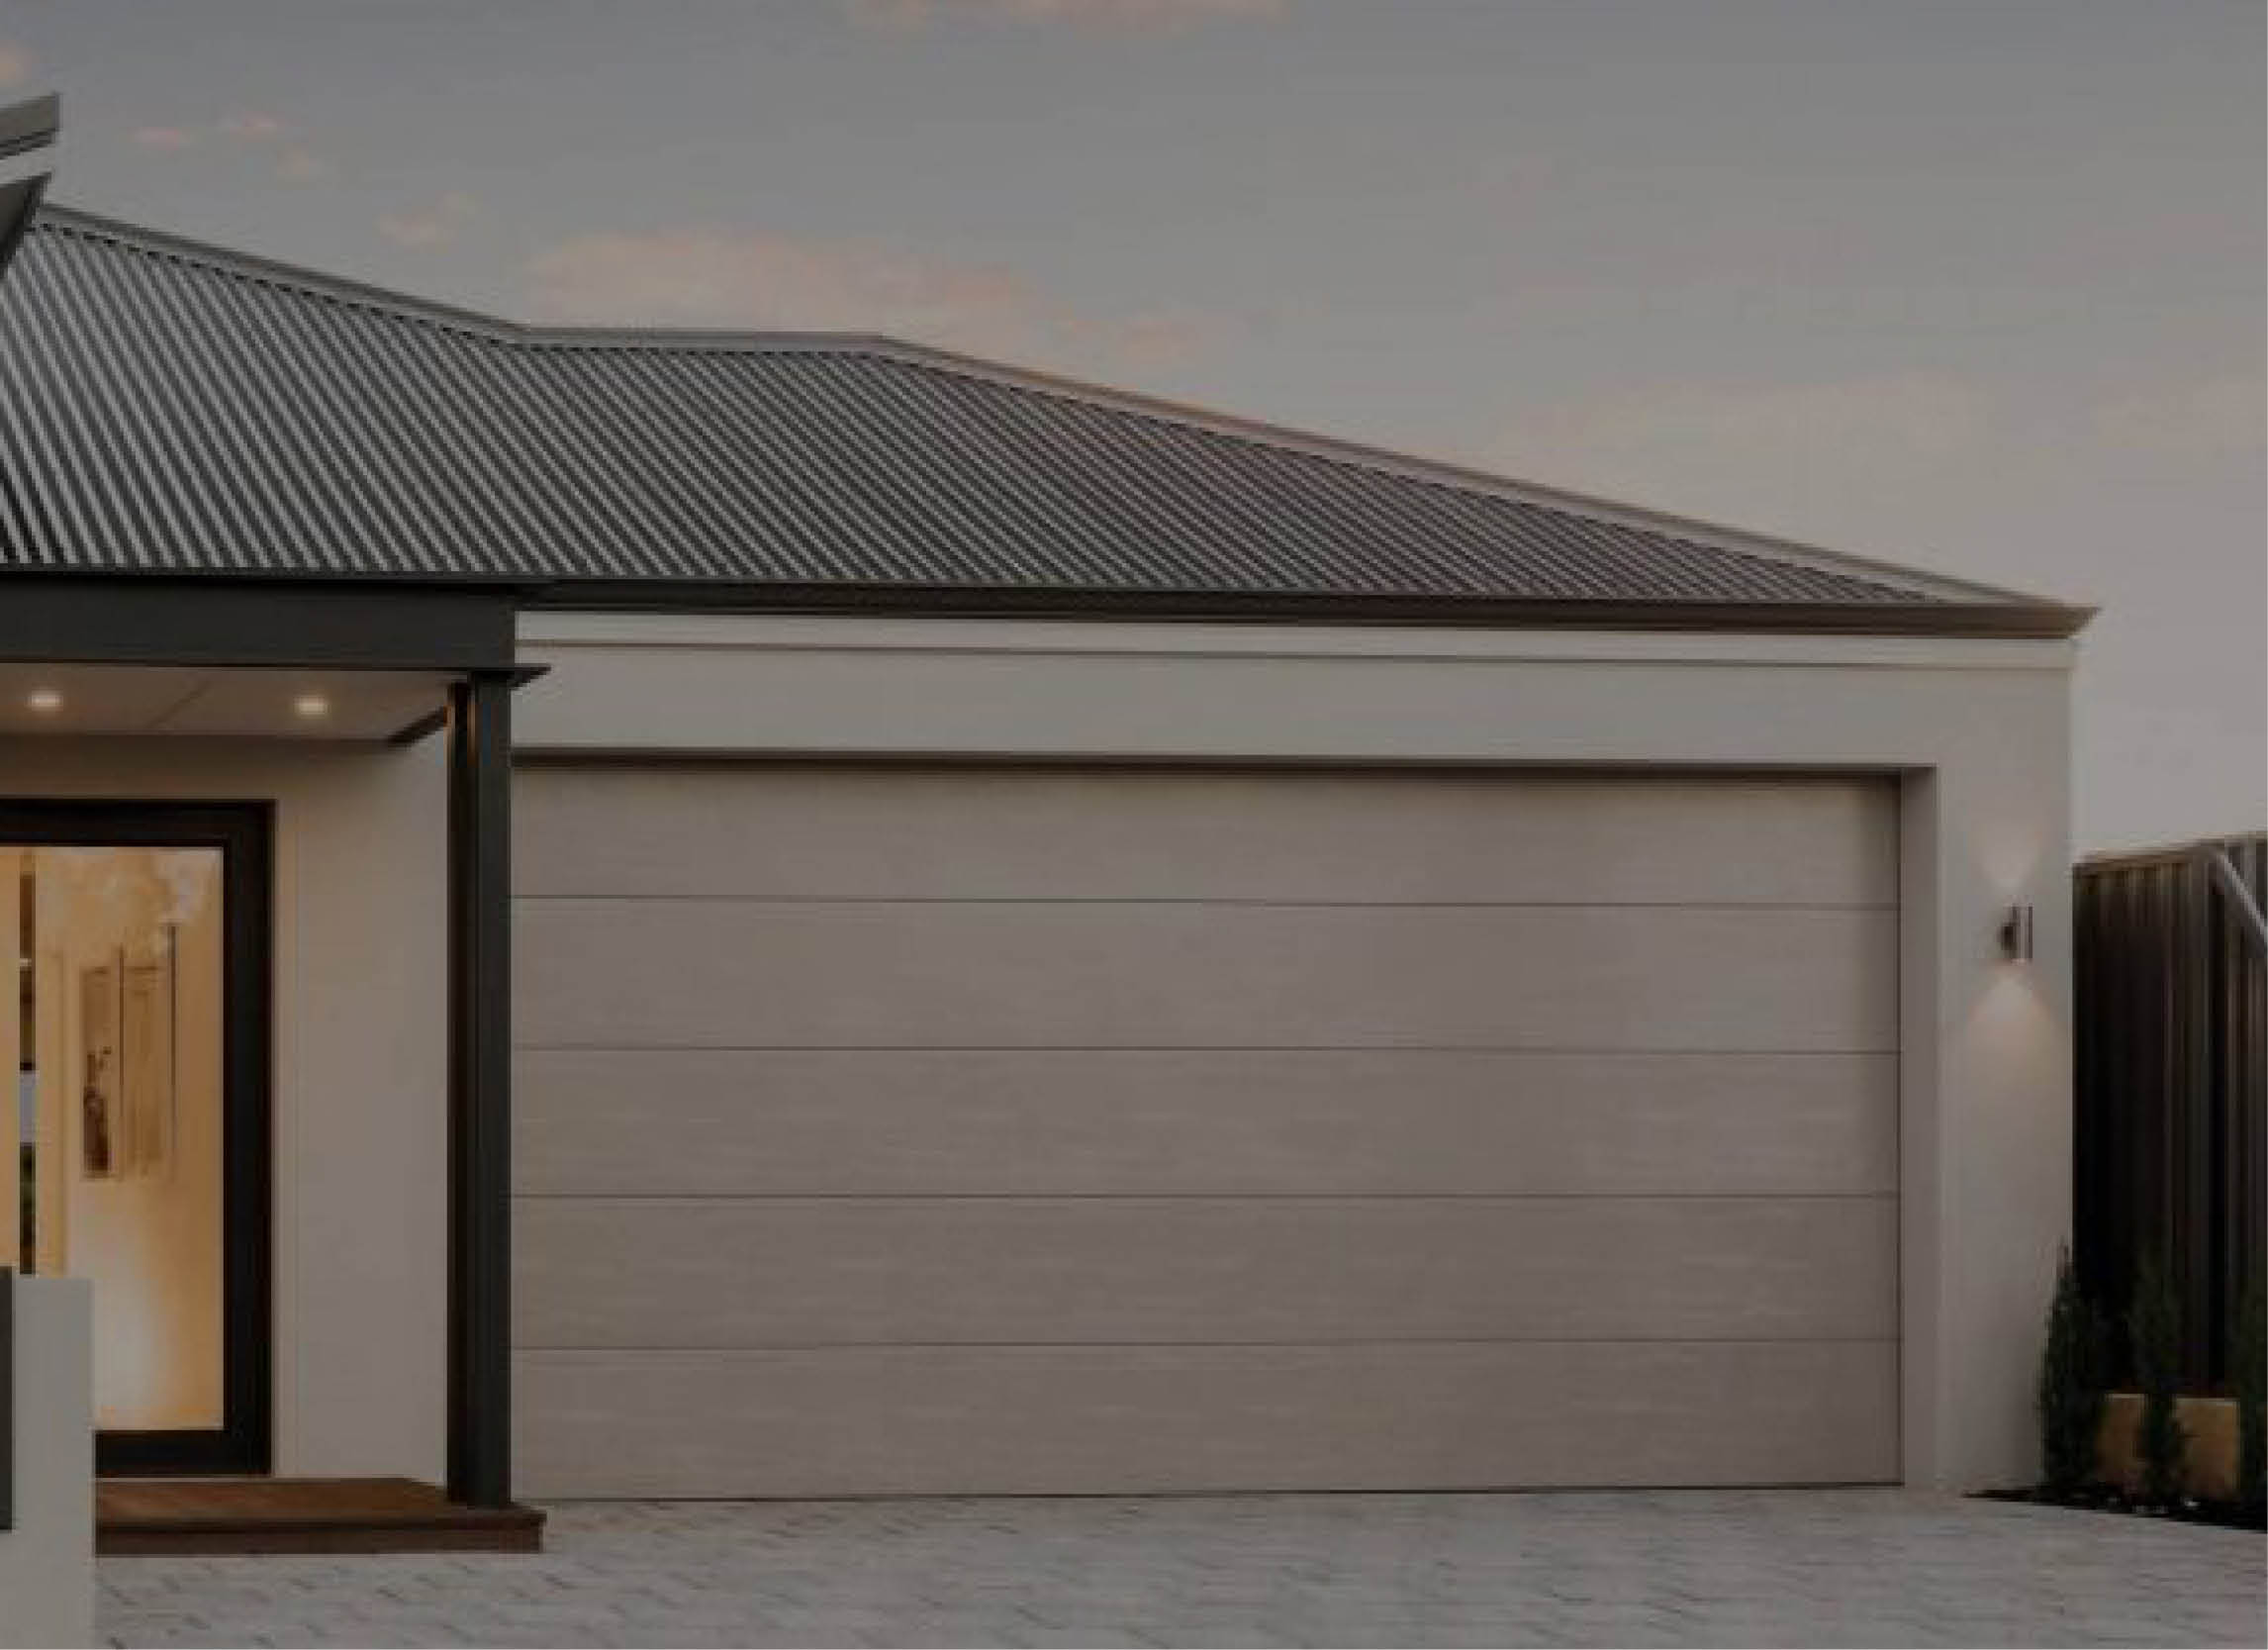 What to consider when buying a garage door